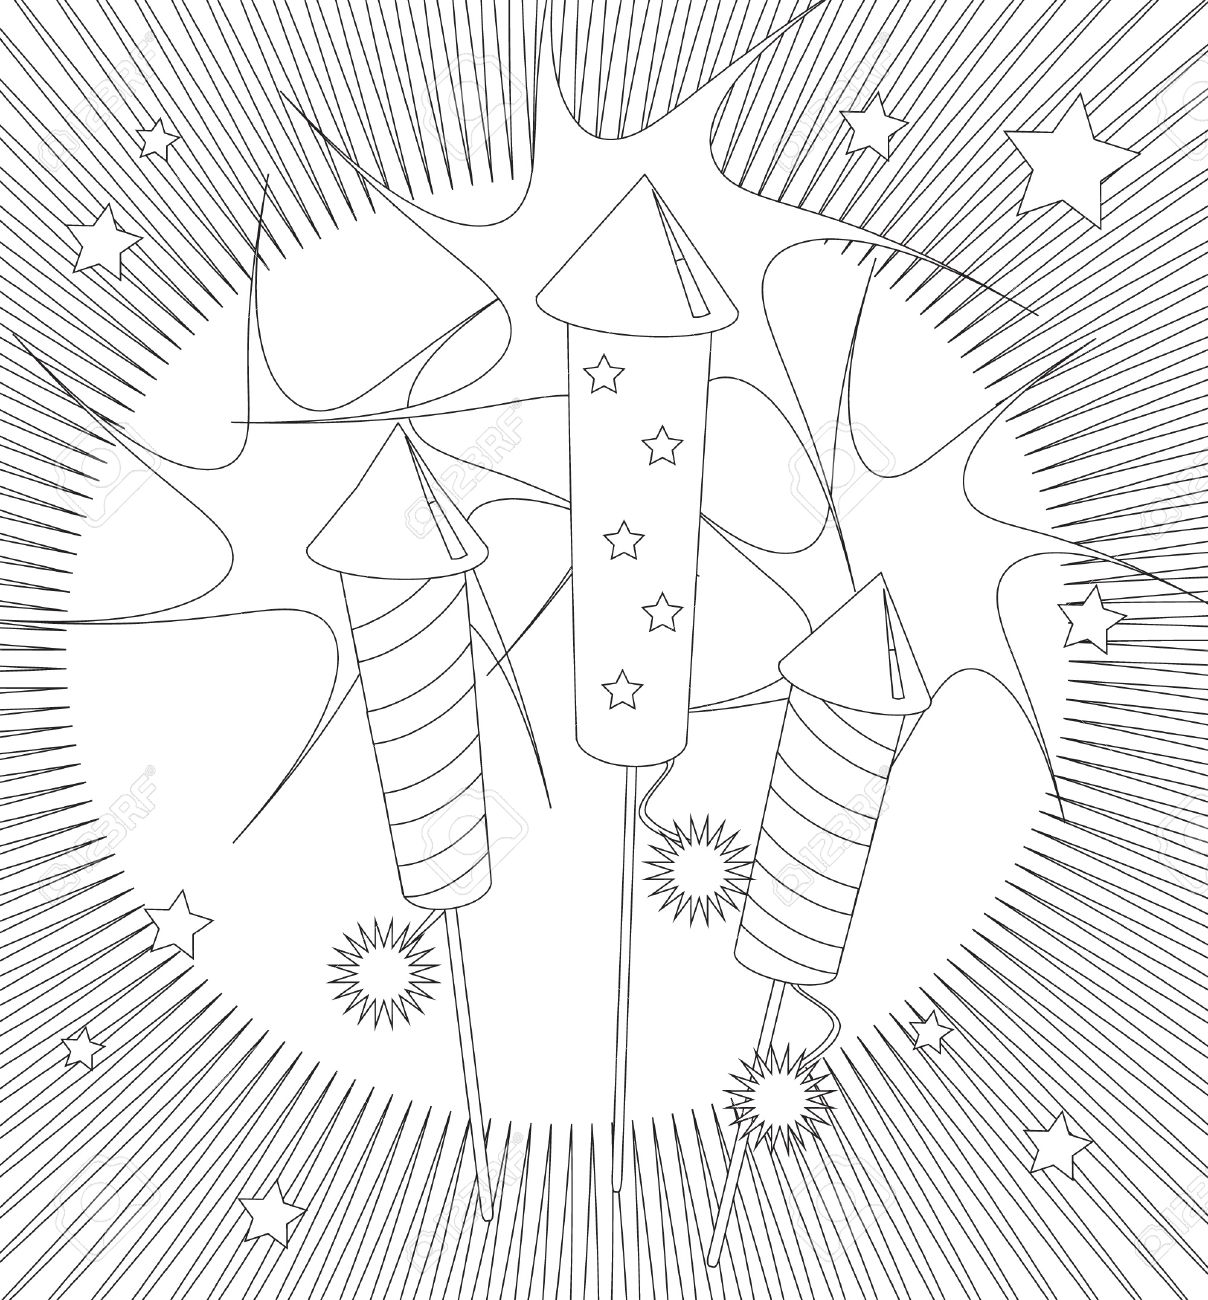 Fireworks Colouring Page. Activity Sheet For Children Suitable ...